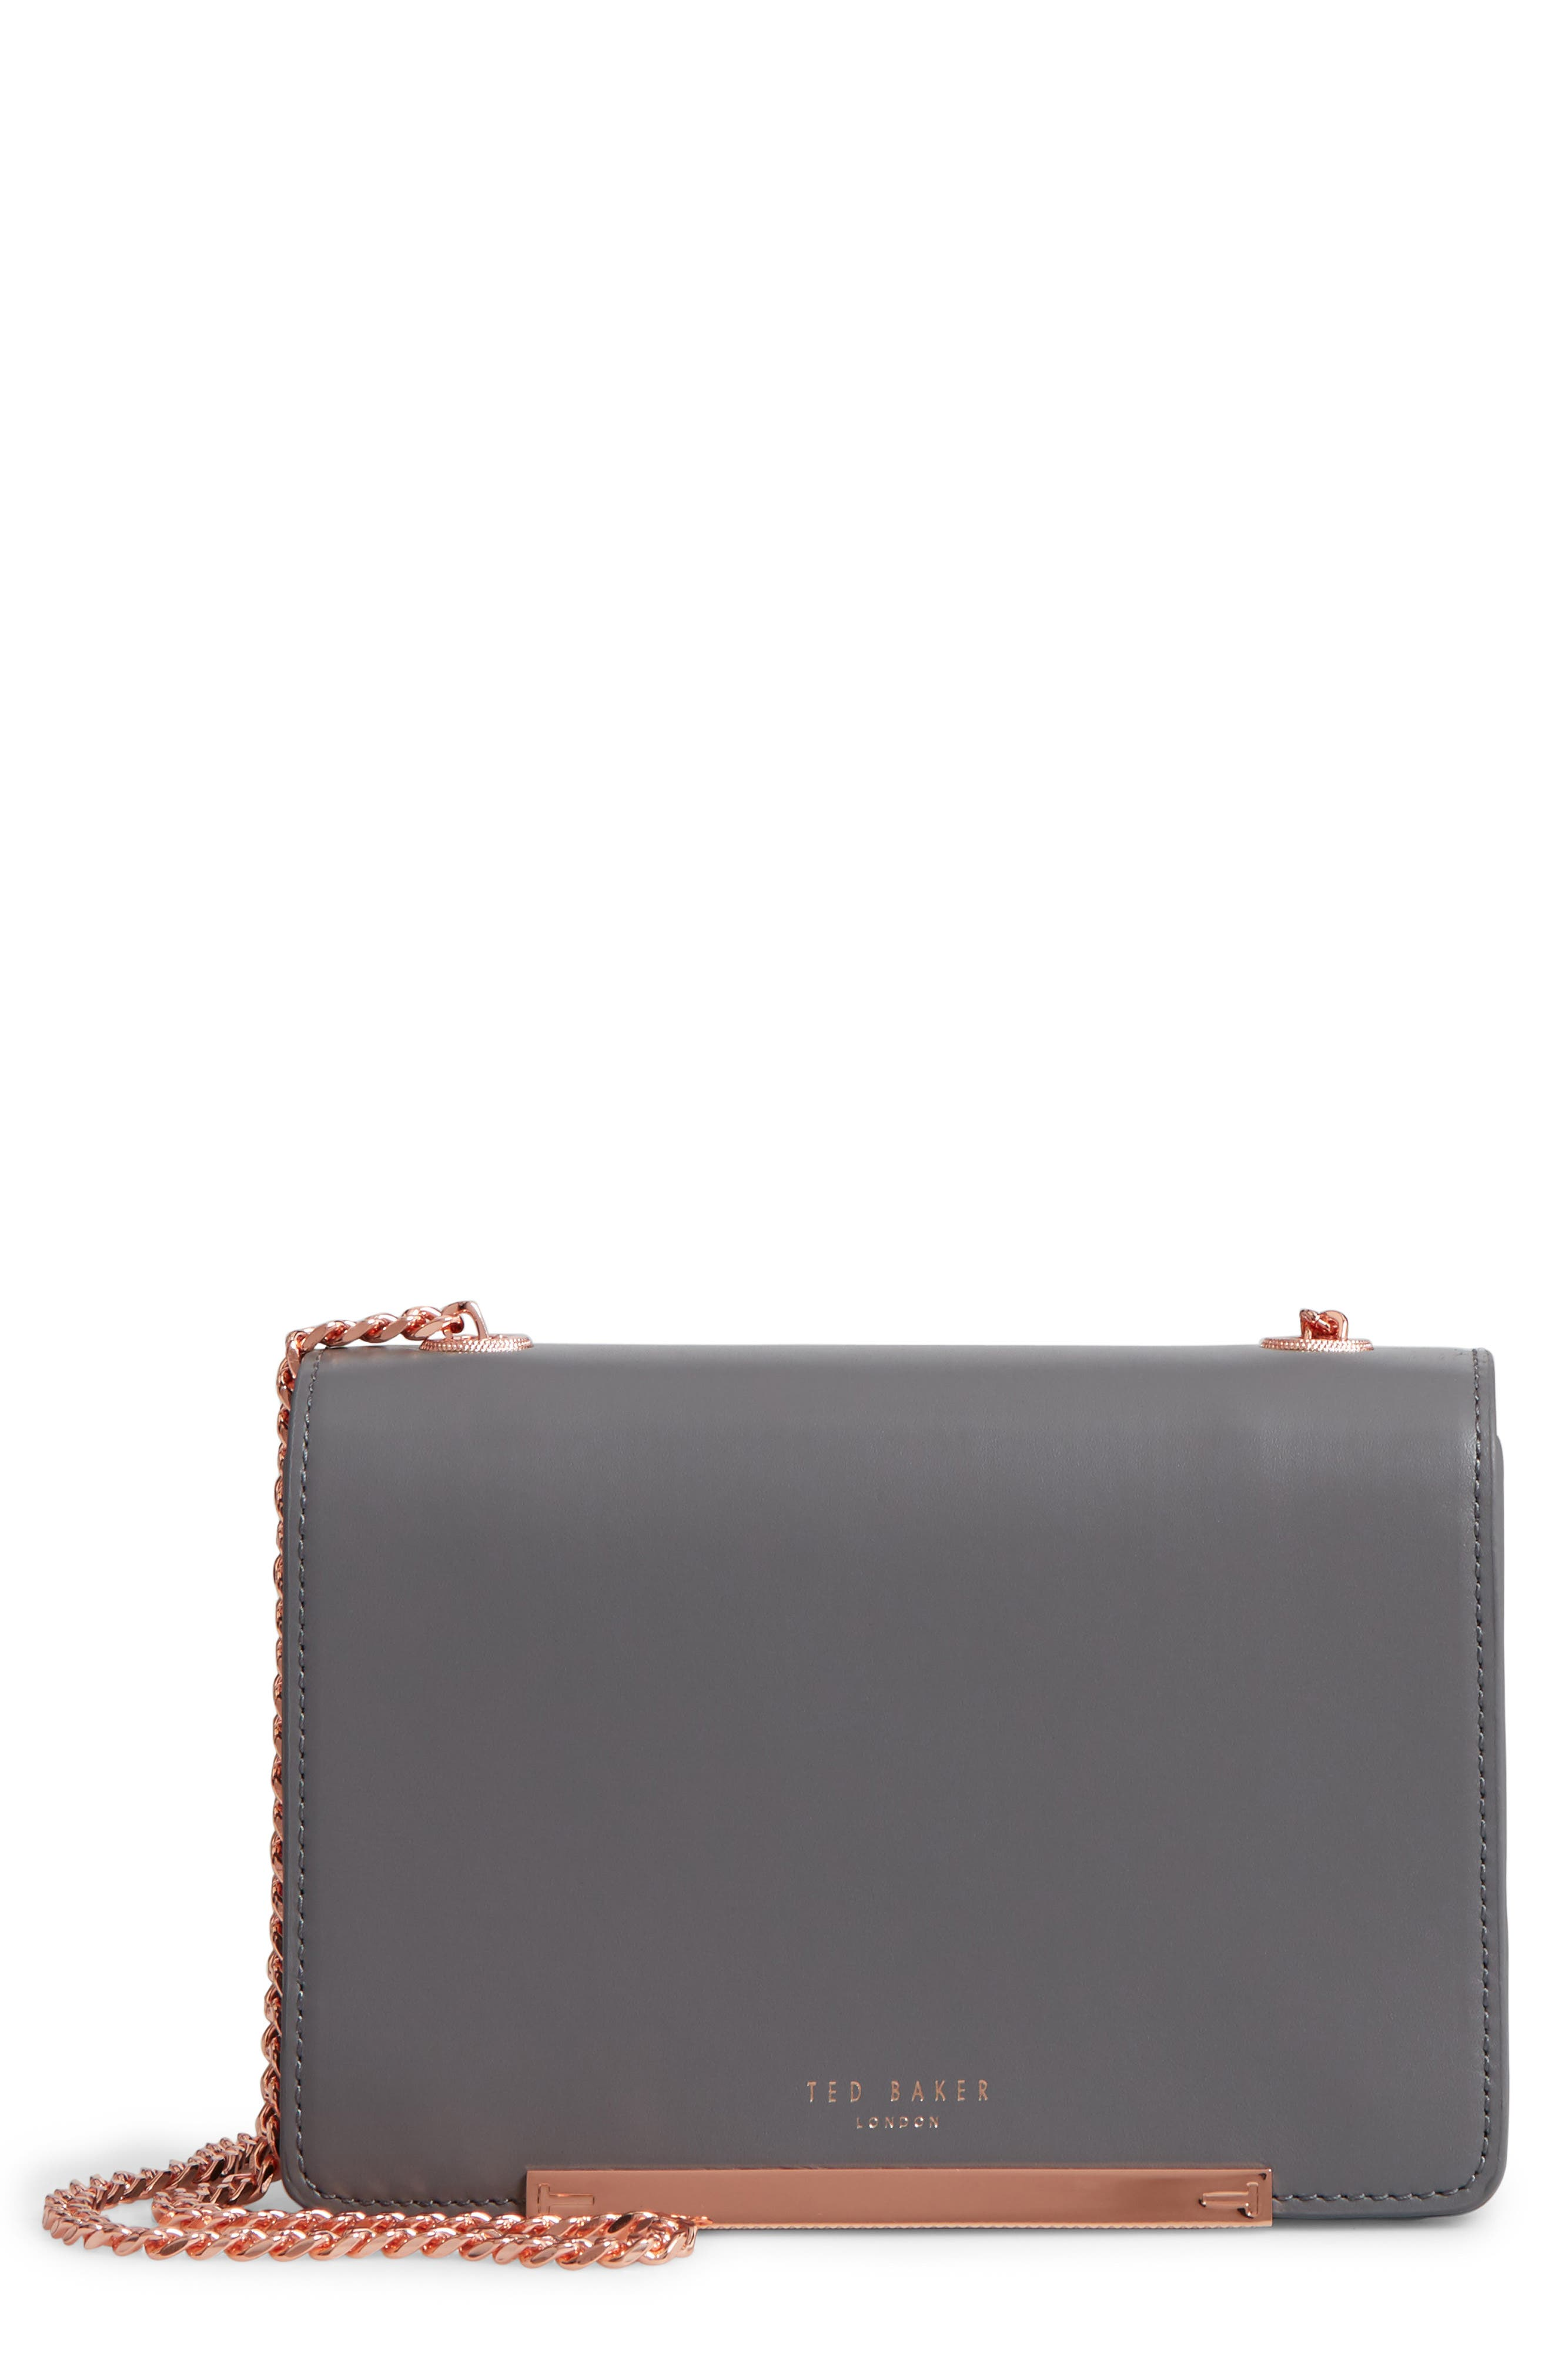 Earie Leather Crossbody Bag,                         Main,                         color, 020